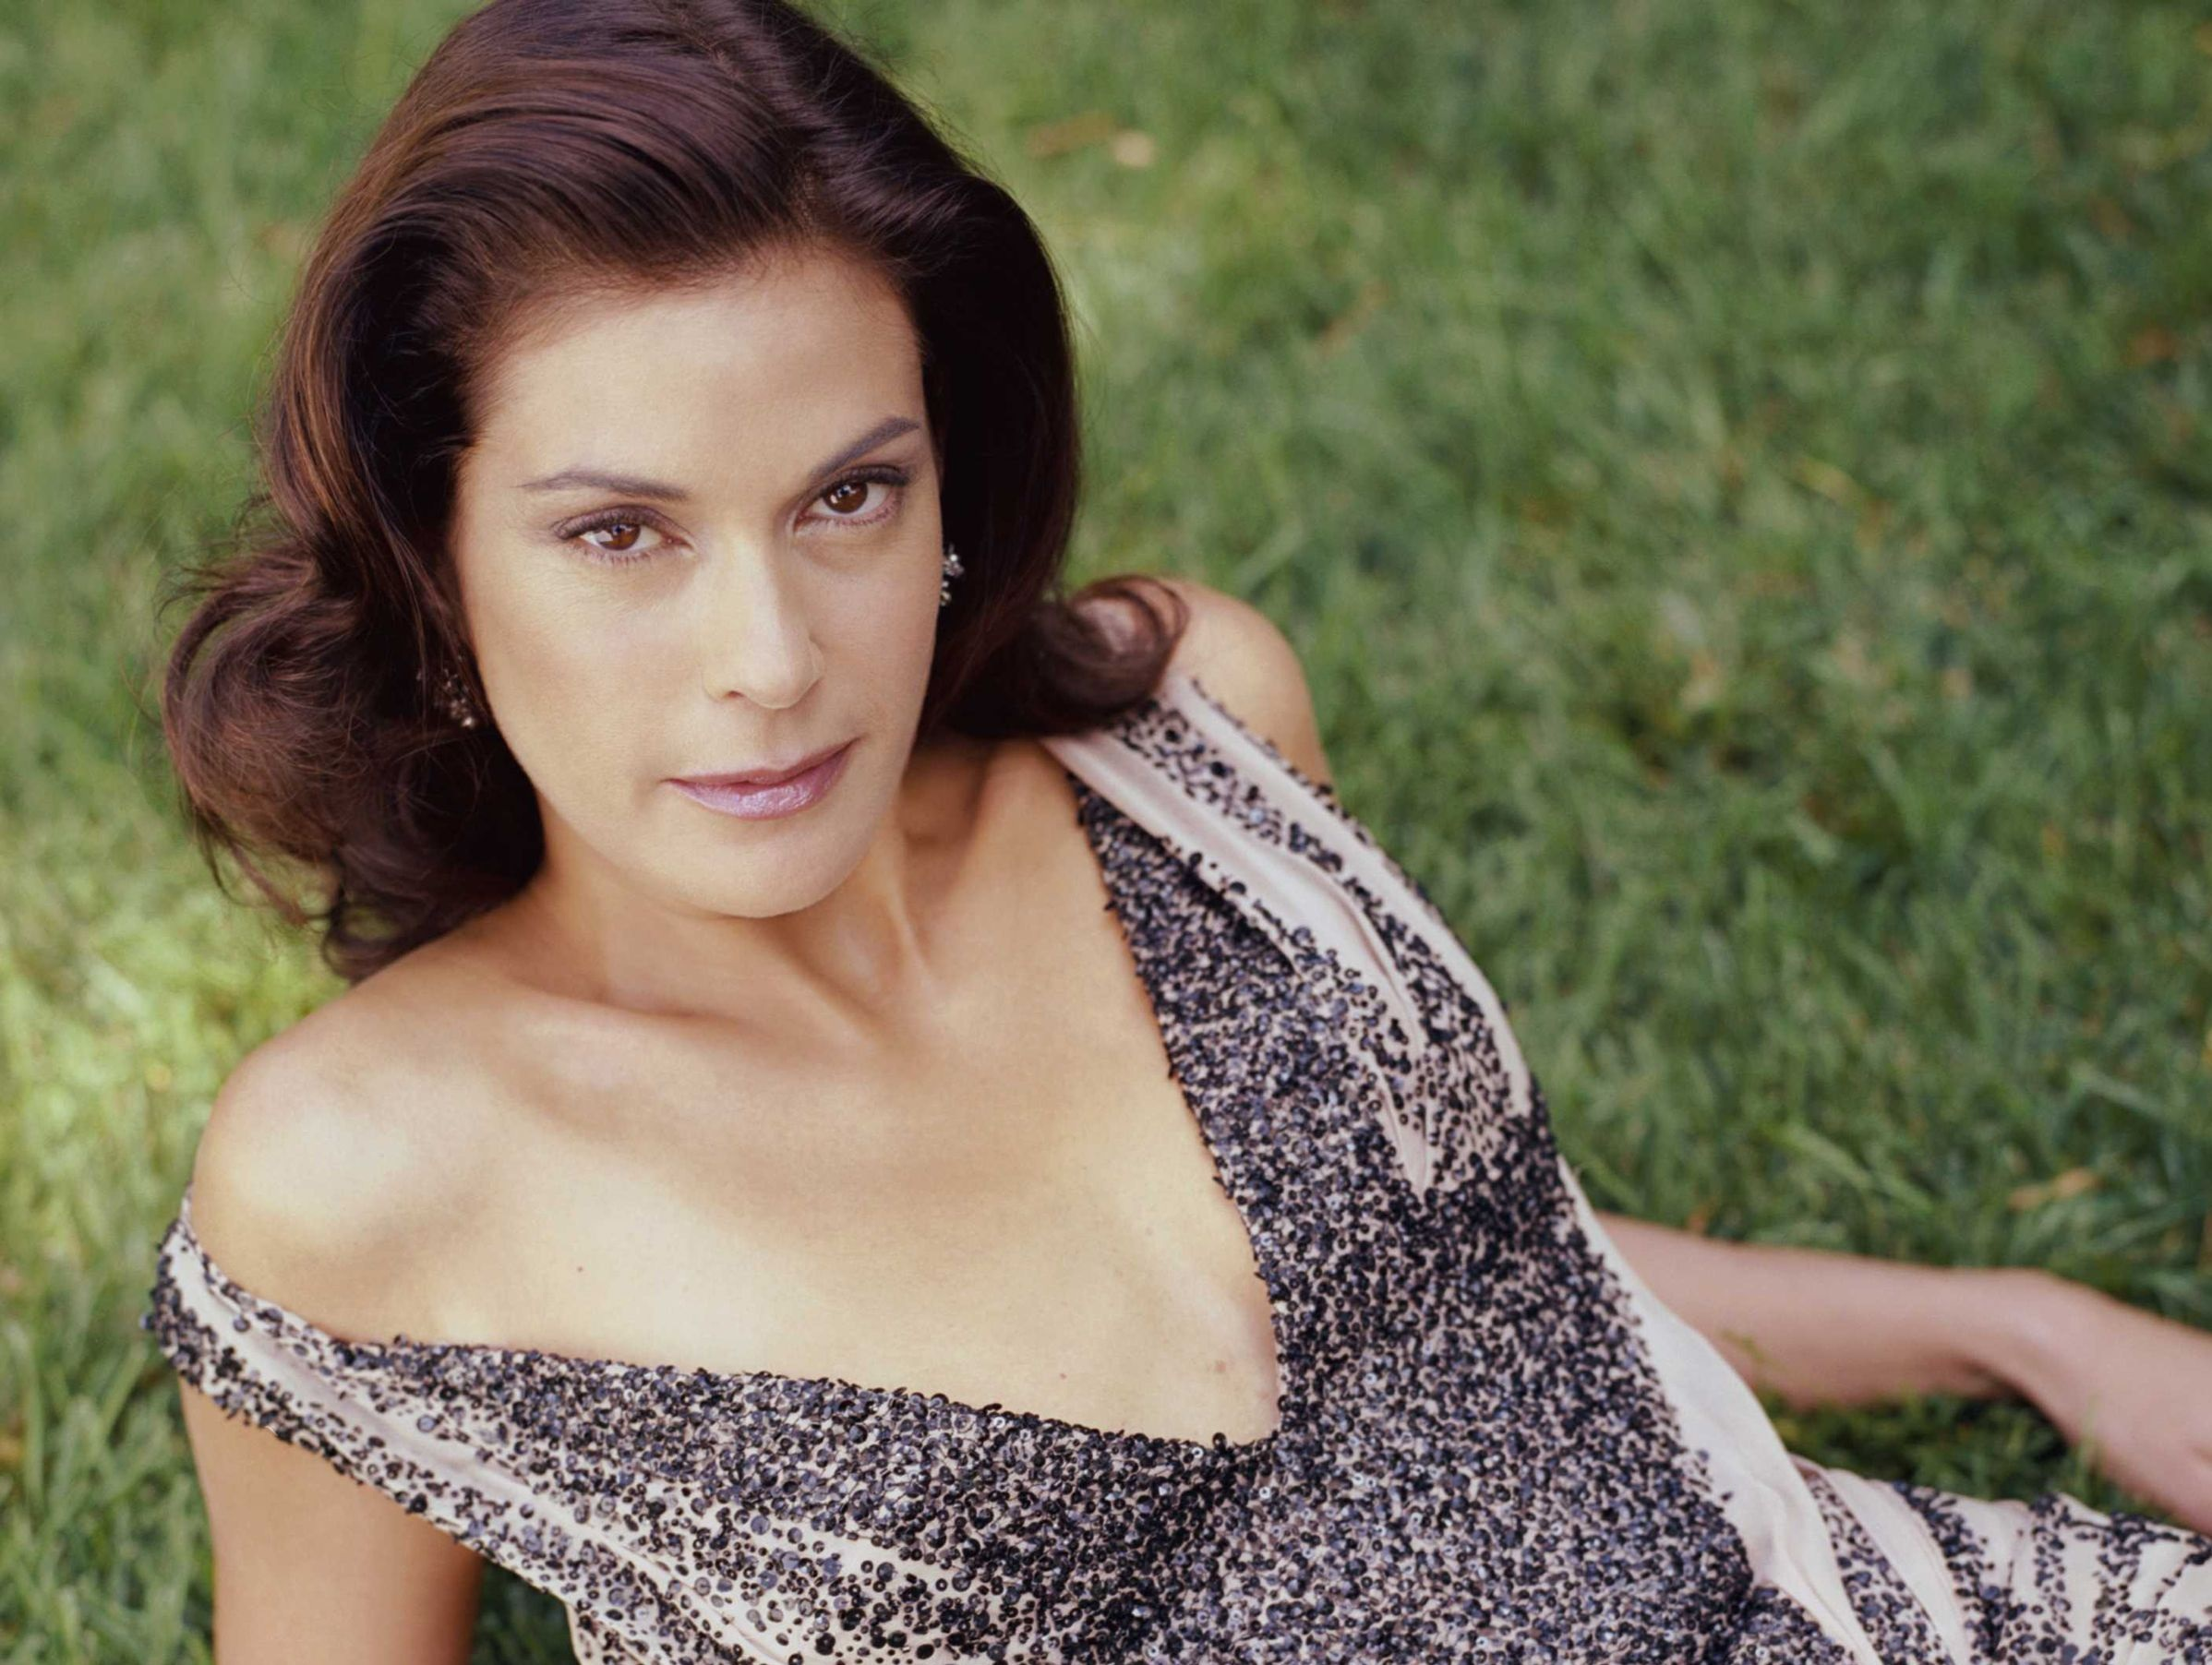 Teri Hatcher nudes (71 pics) Young, YouTube, cleavage